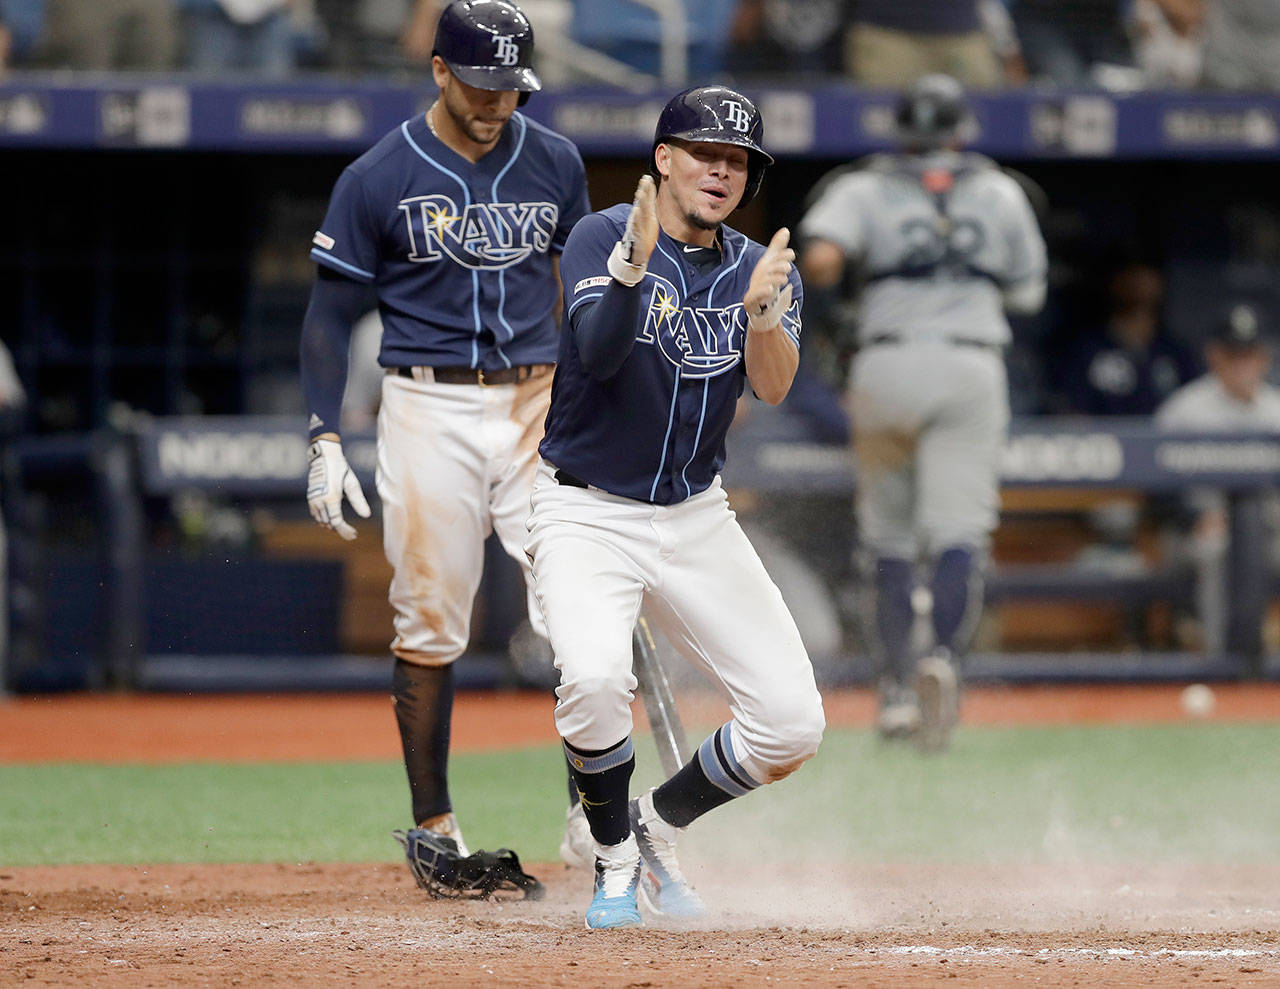 Tampa Bay's Willy Adames (front) reacts to scoring the game-winning run on a wild pitch by Seattle's Matt Magill during the ninth inning Wednesday in St. Petersburg, Florida, as Tommy Pham looks on. (AP Photo/Chris O'Meara)